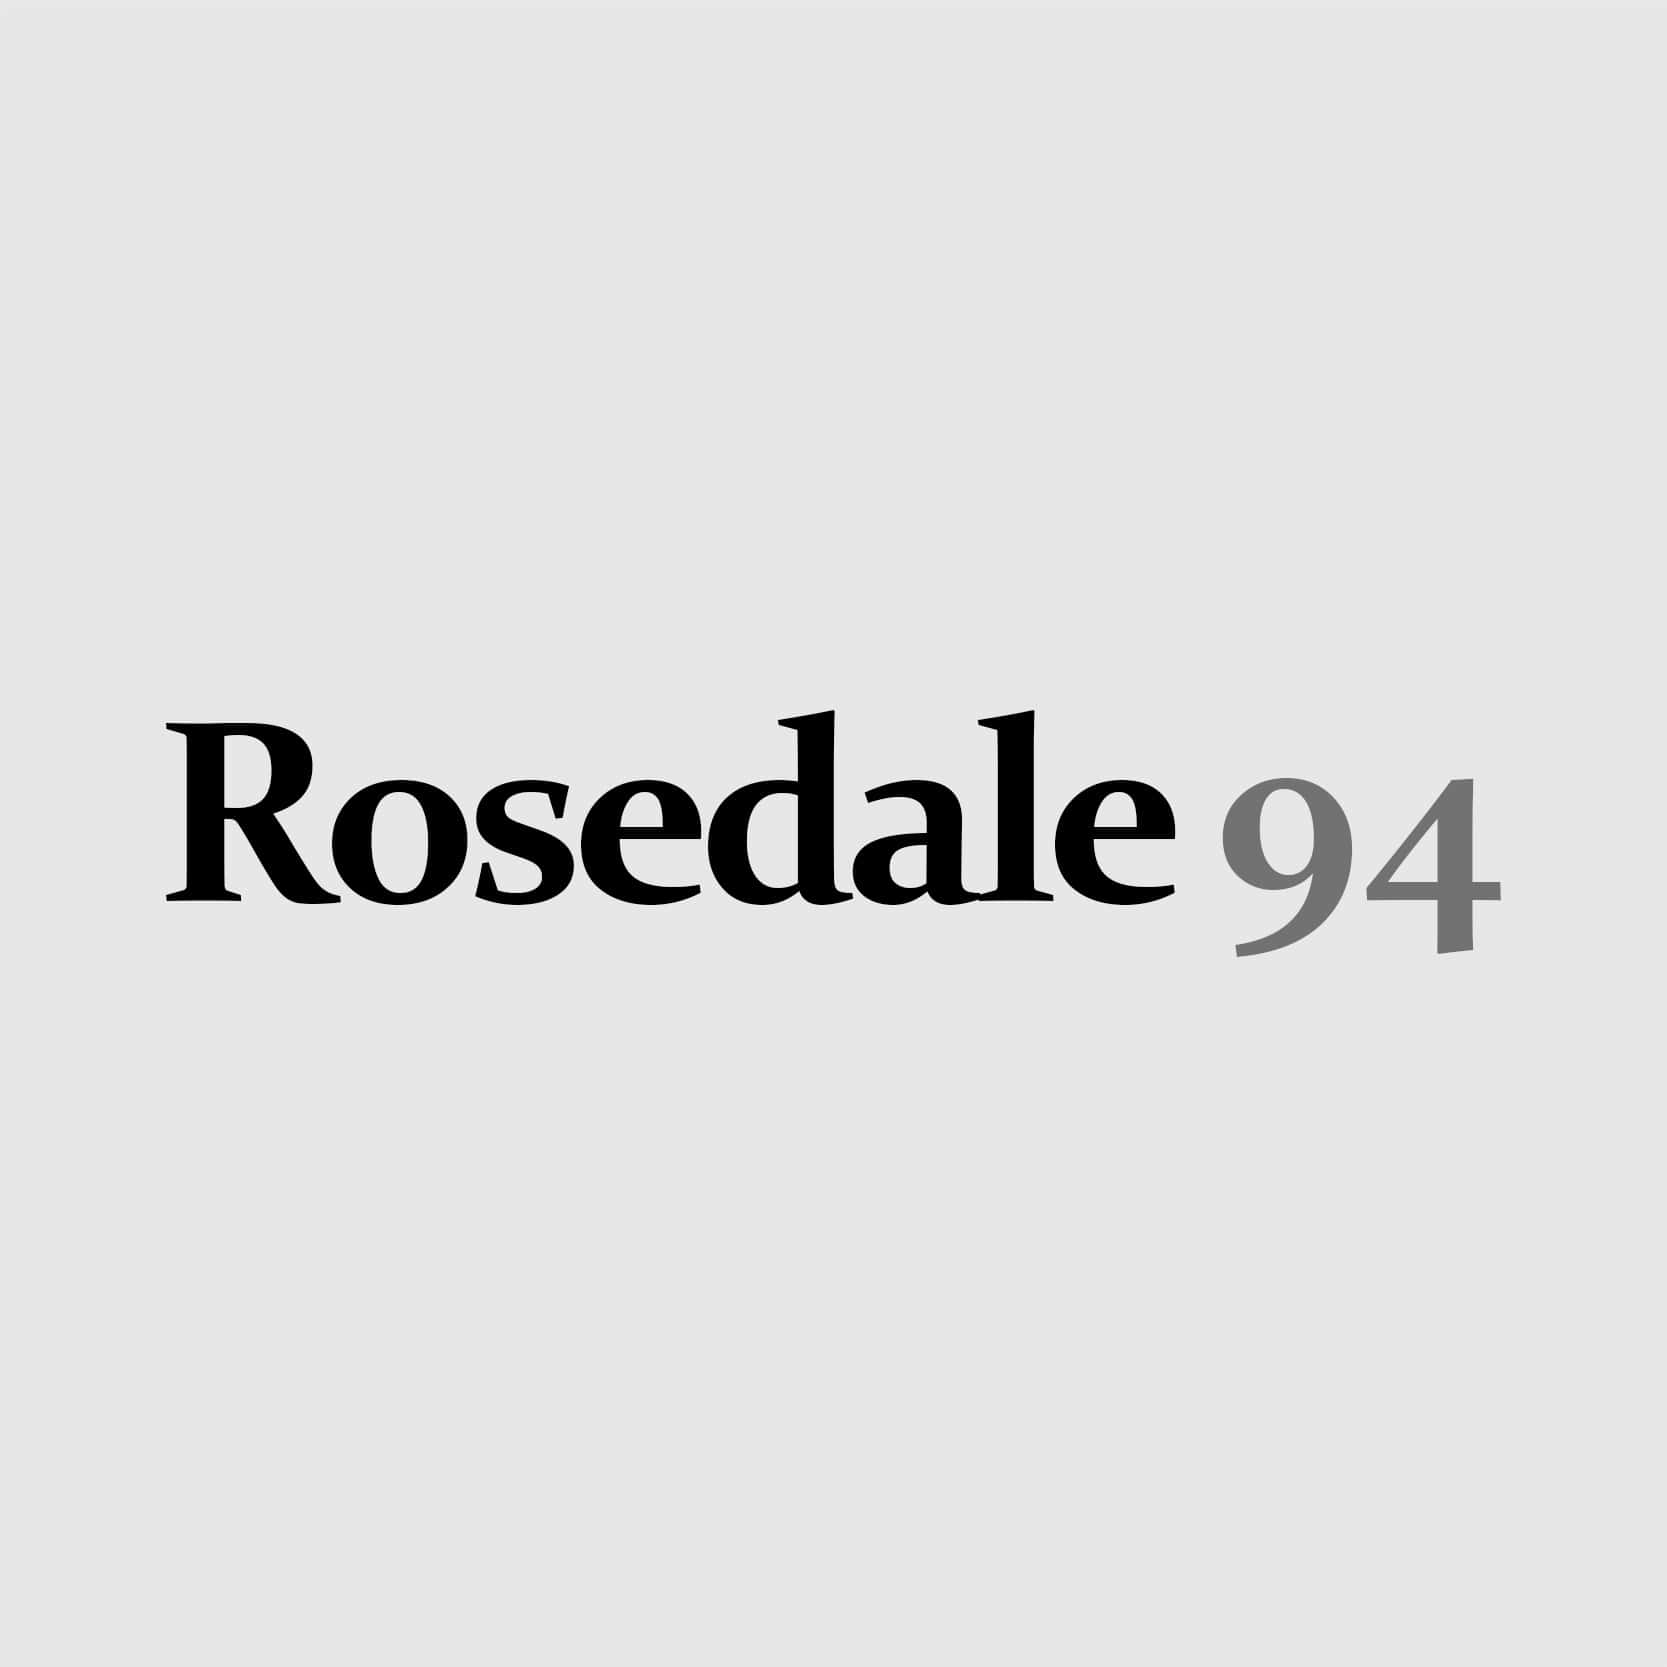 17-12 - Rosedale 94 - Content Cover_BW-min.jpg